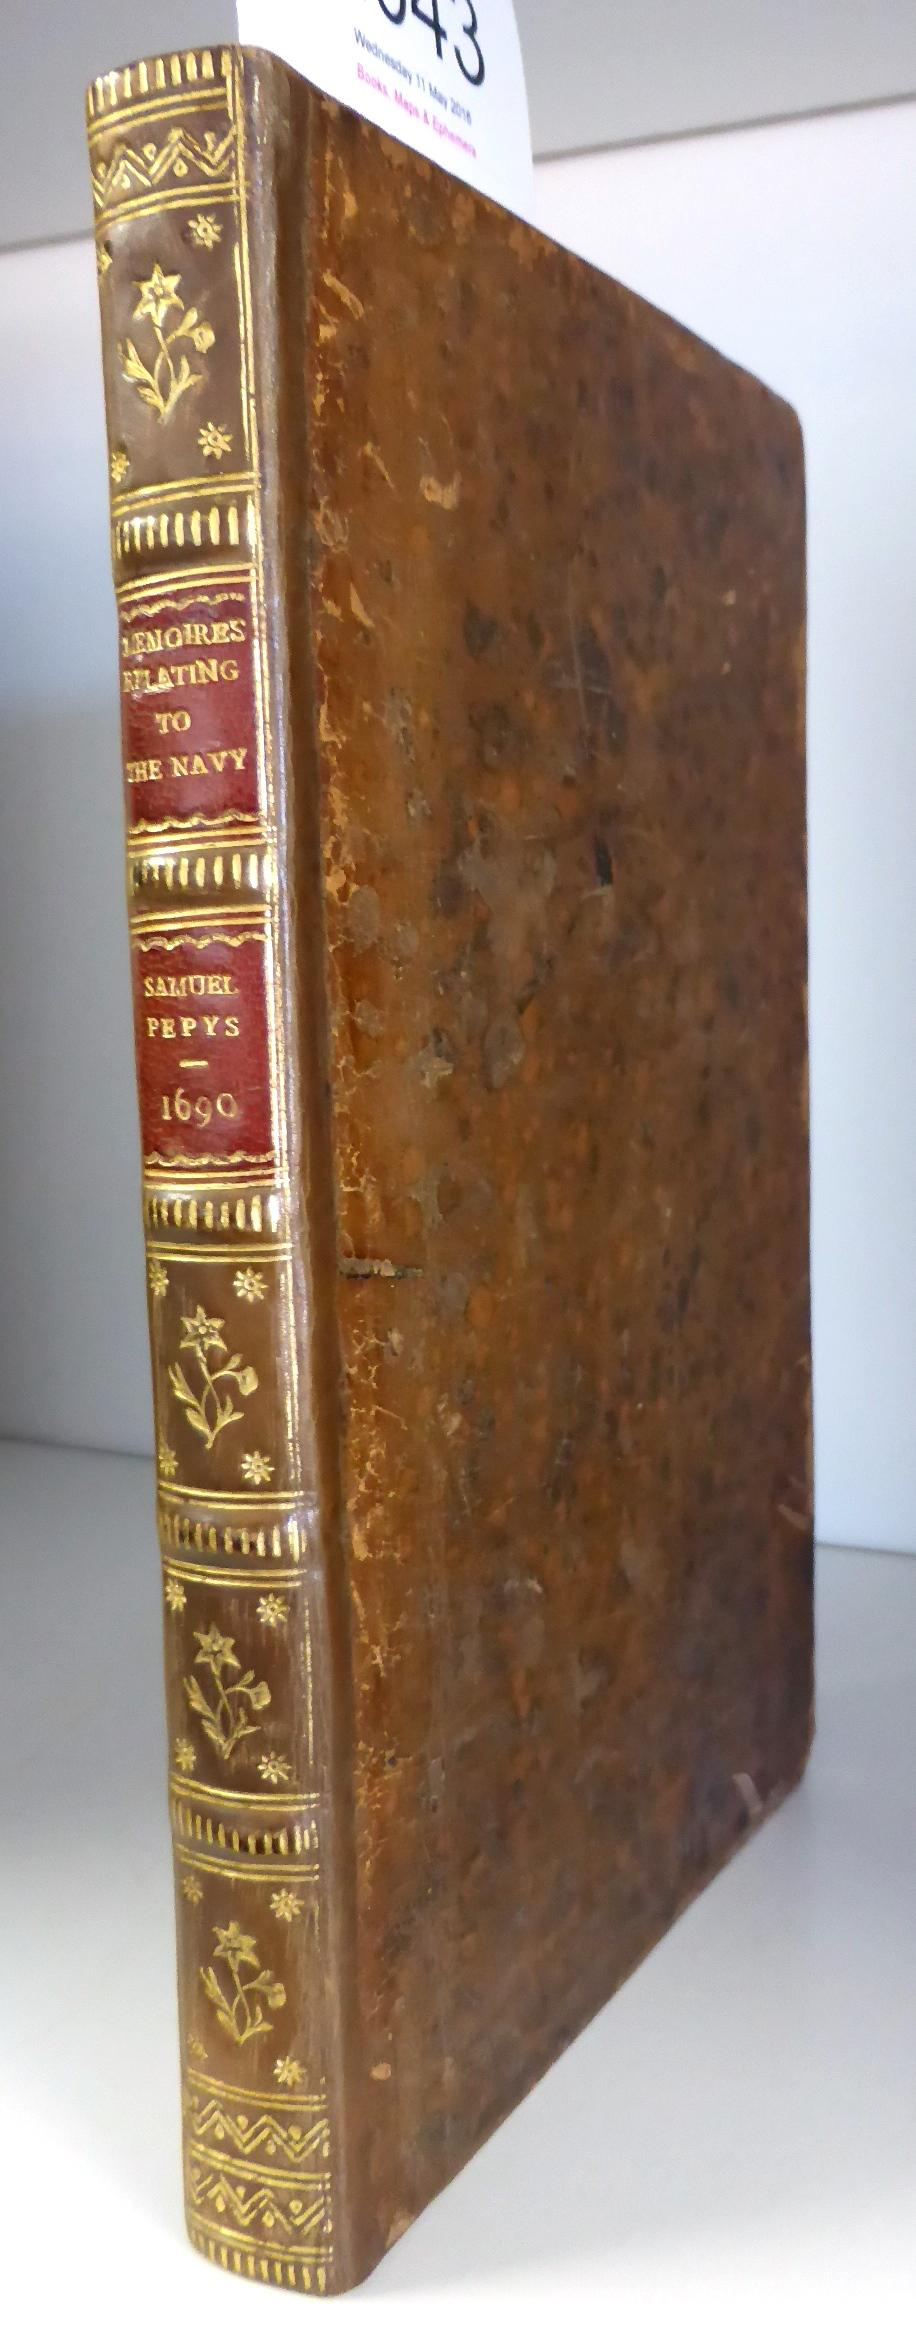 Lot 2043 - [Pepys (Samuel)] Memoires Relating to the State of the Royal Navy of England, For Ten Years,